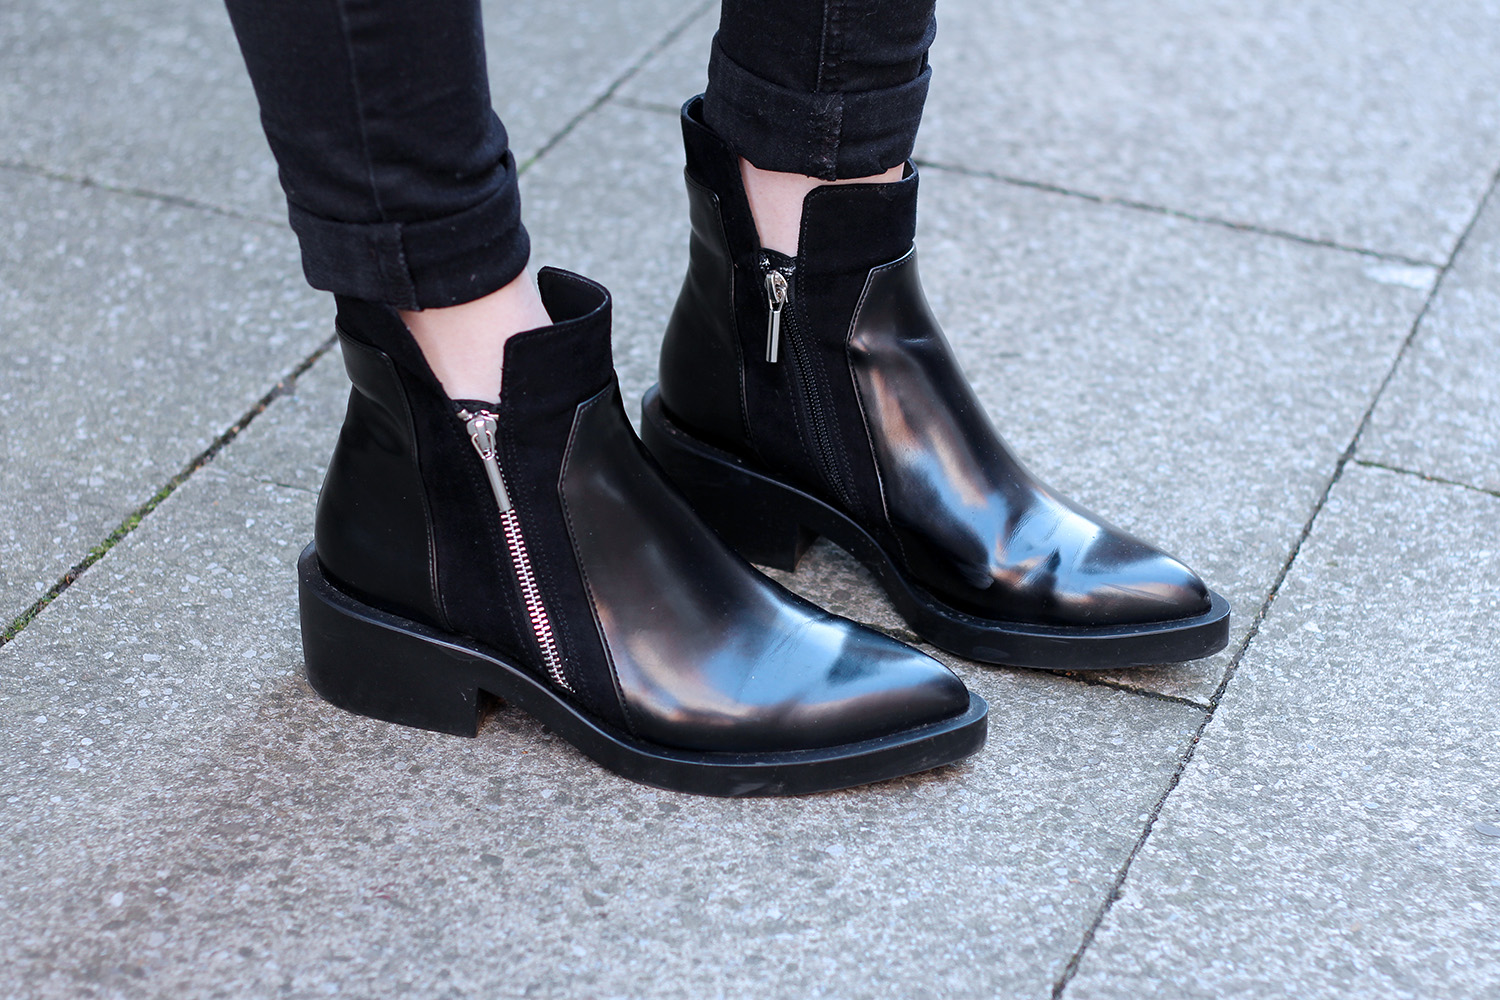 8b6f08108ae81 ankle boots Archives - Hannah Louise Fashion